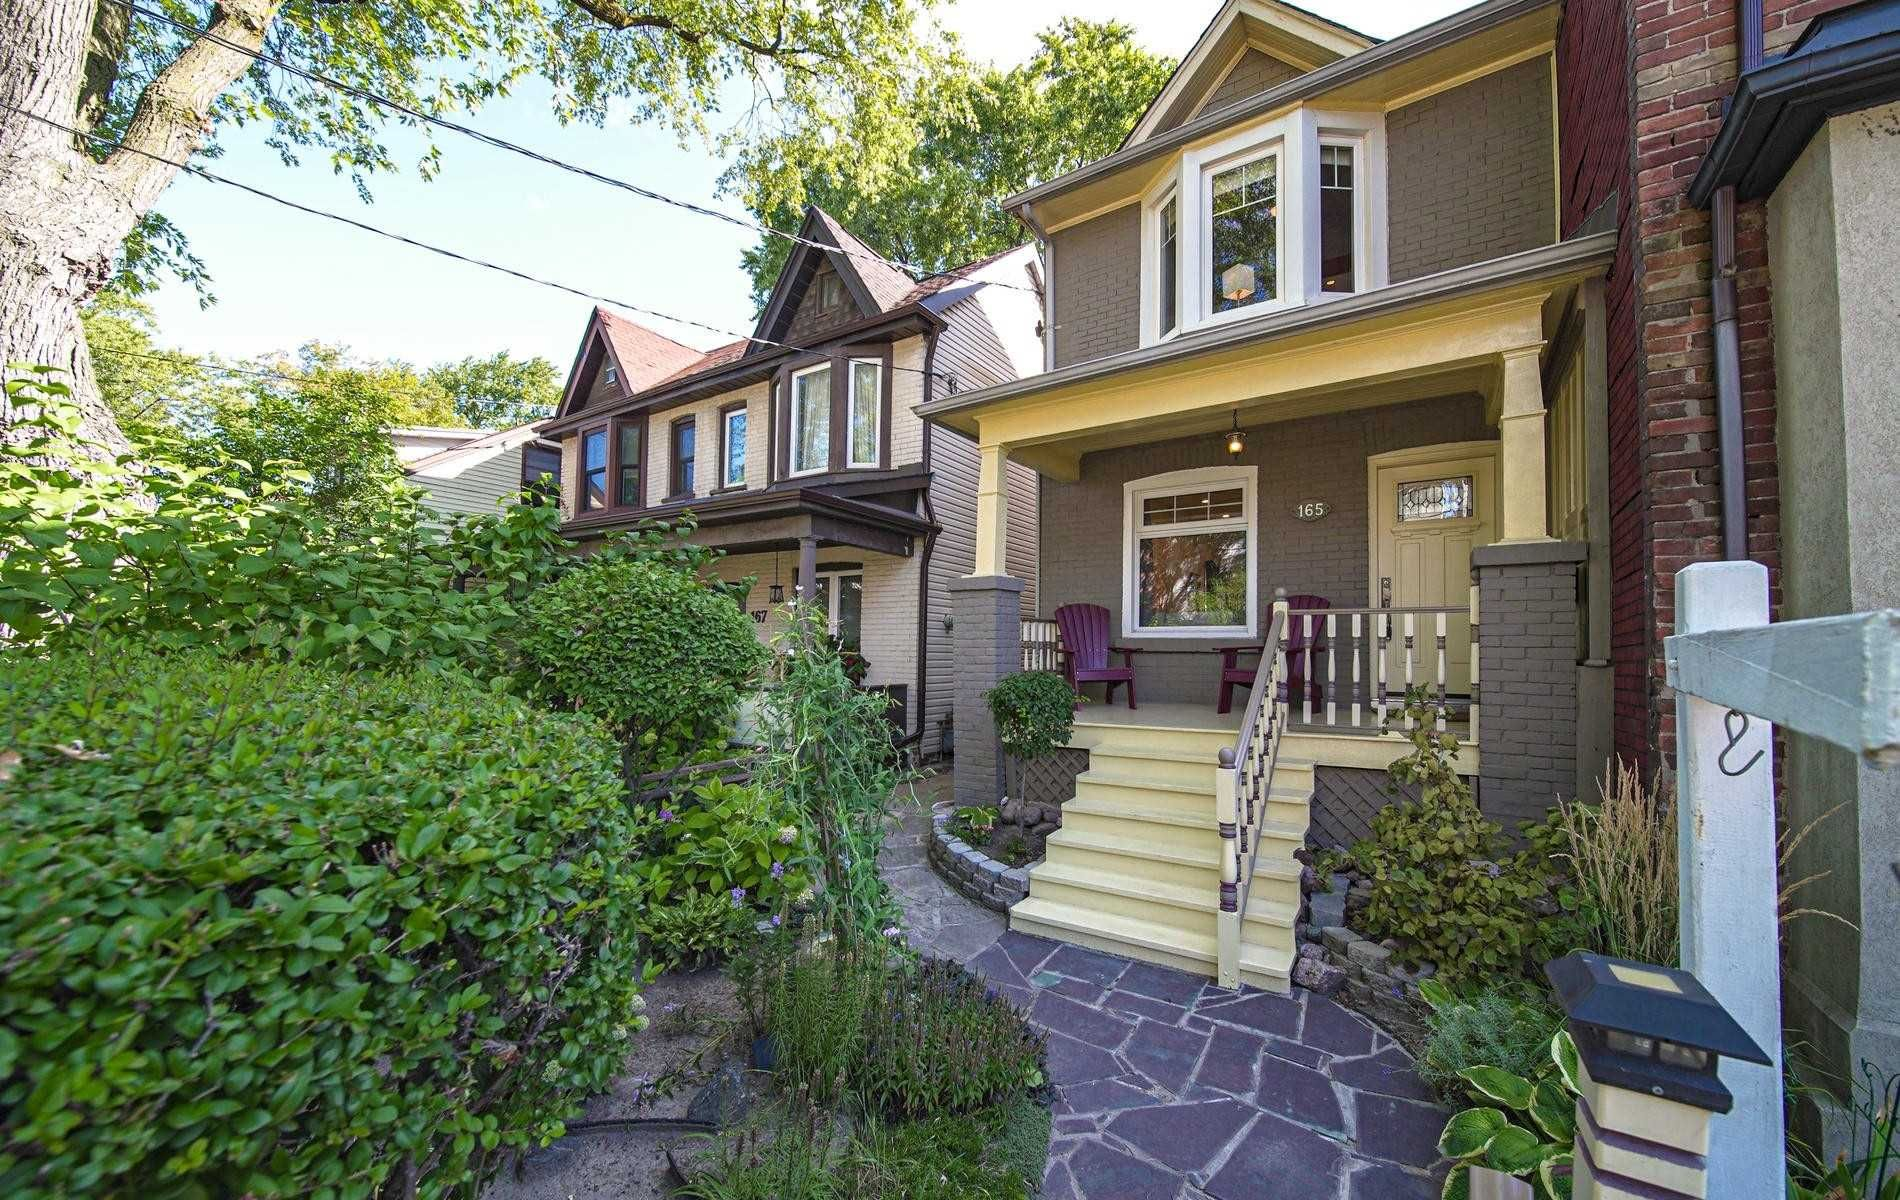 Main Photo: 165 Munro Street in Toronto: South Riverdale House (2-Storey) for sale (Toronto E01)  : MLS®# E4562412